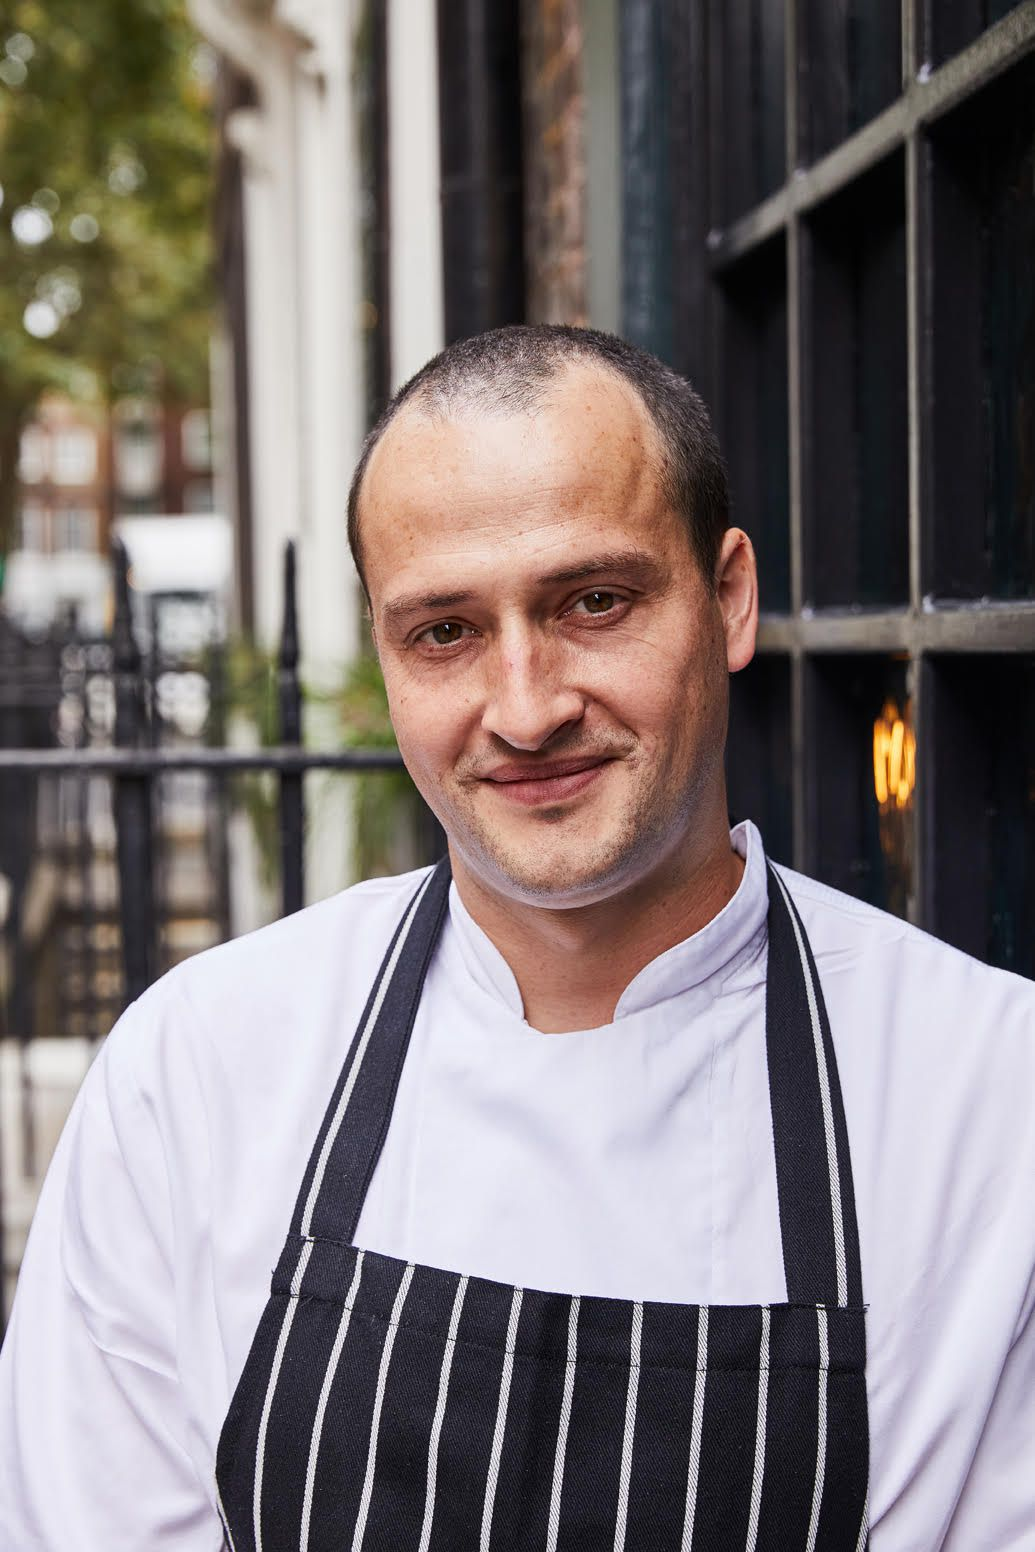 Chef Alex Jackson, in a blue and white striped apron and white shirt, outside Noble Rot restaurant in Soho